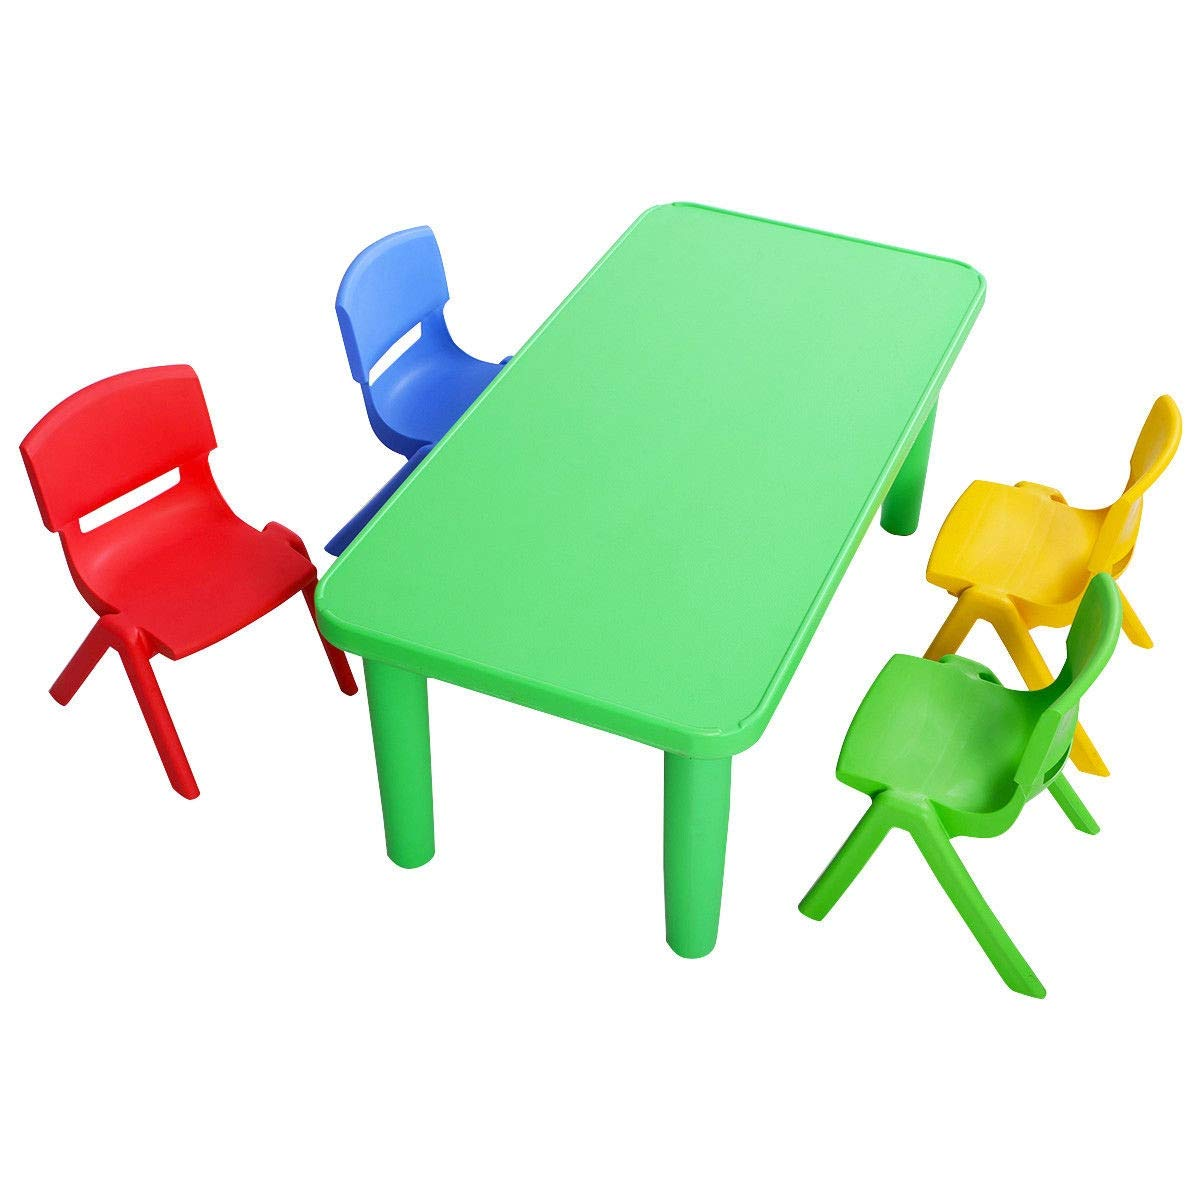 Kids Colorful Plastic Table and 4 Chairs Set | Quality Durable Sturdy Wooden Activity Workstation | Plastic Smooth Rounded Corners Children Drawing Desk | Preschool Homeschool | Unisex Boy Girl by Cway